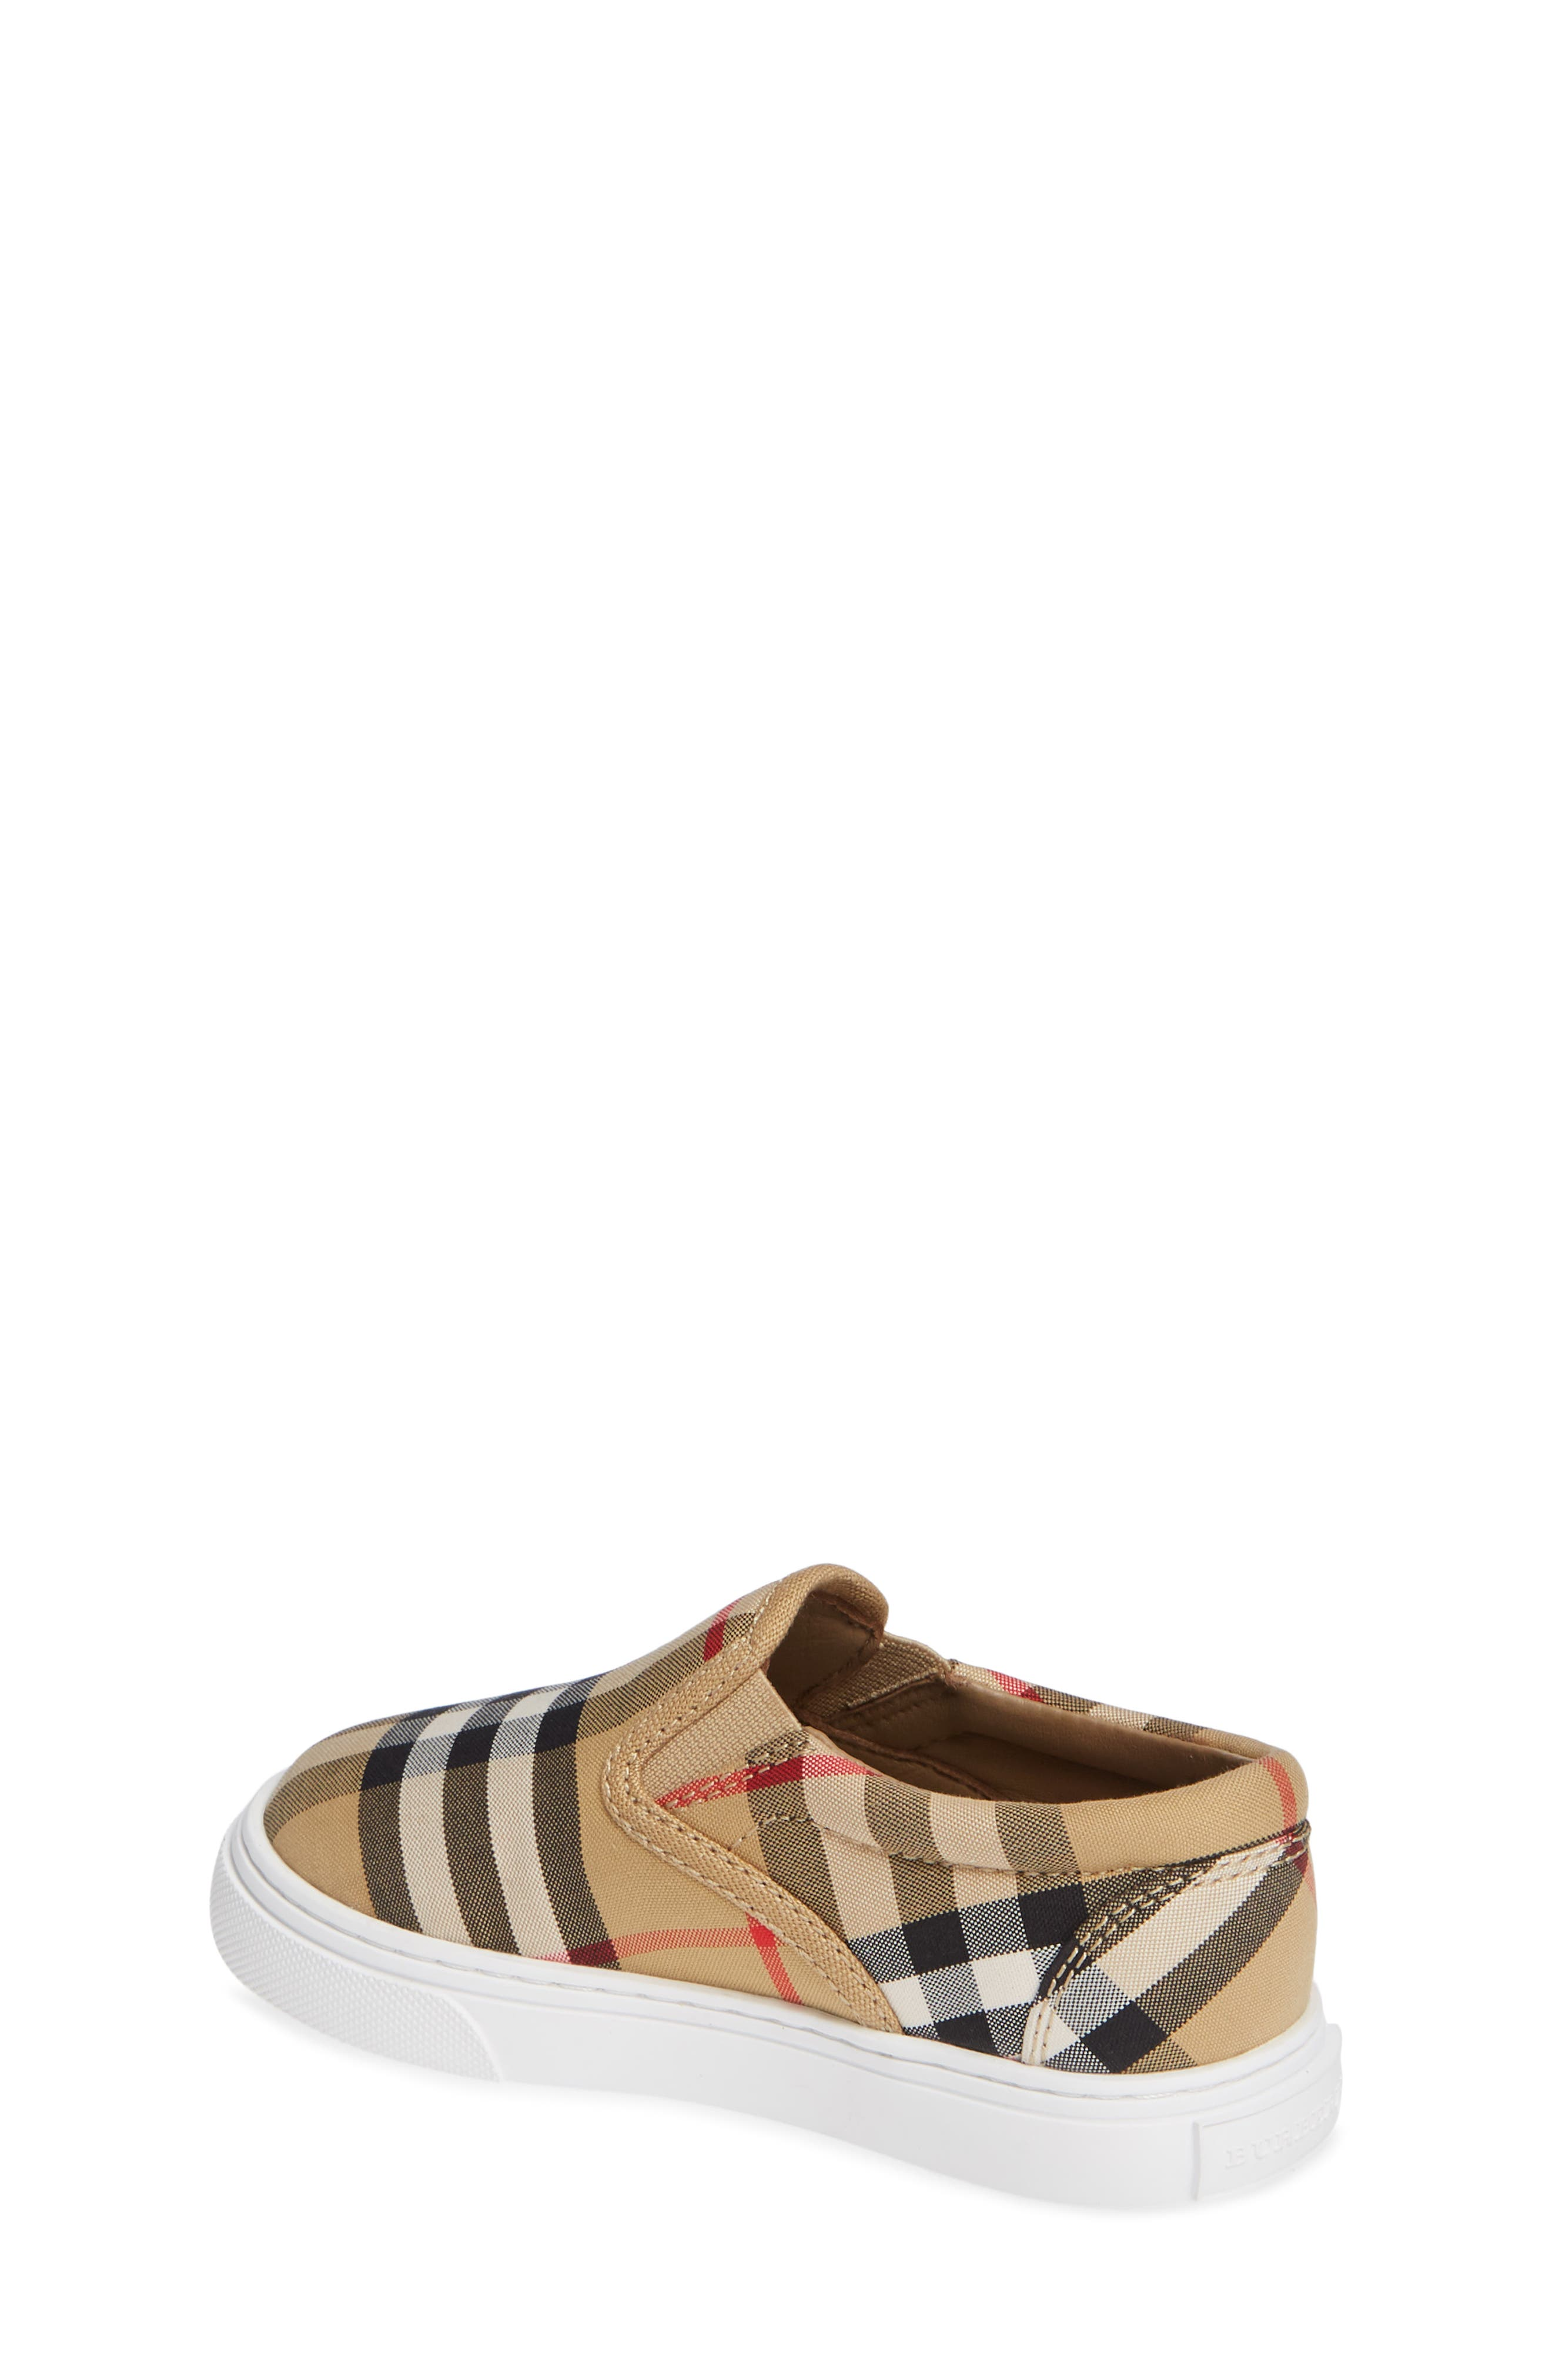 9d5942a01058 Burberry Kids  Shoes